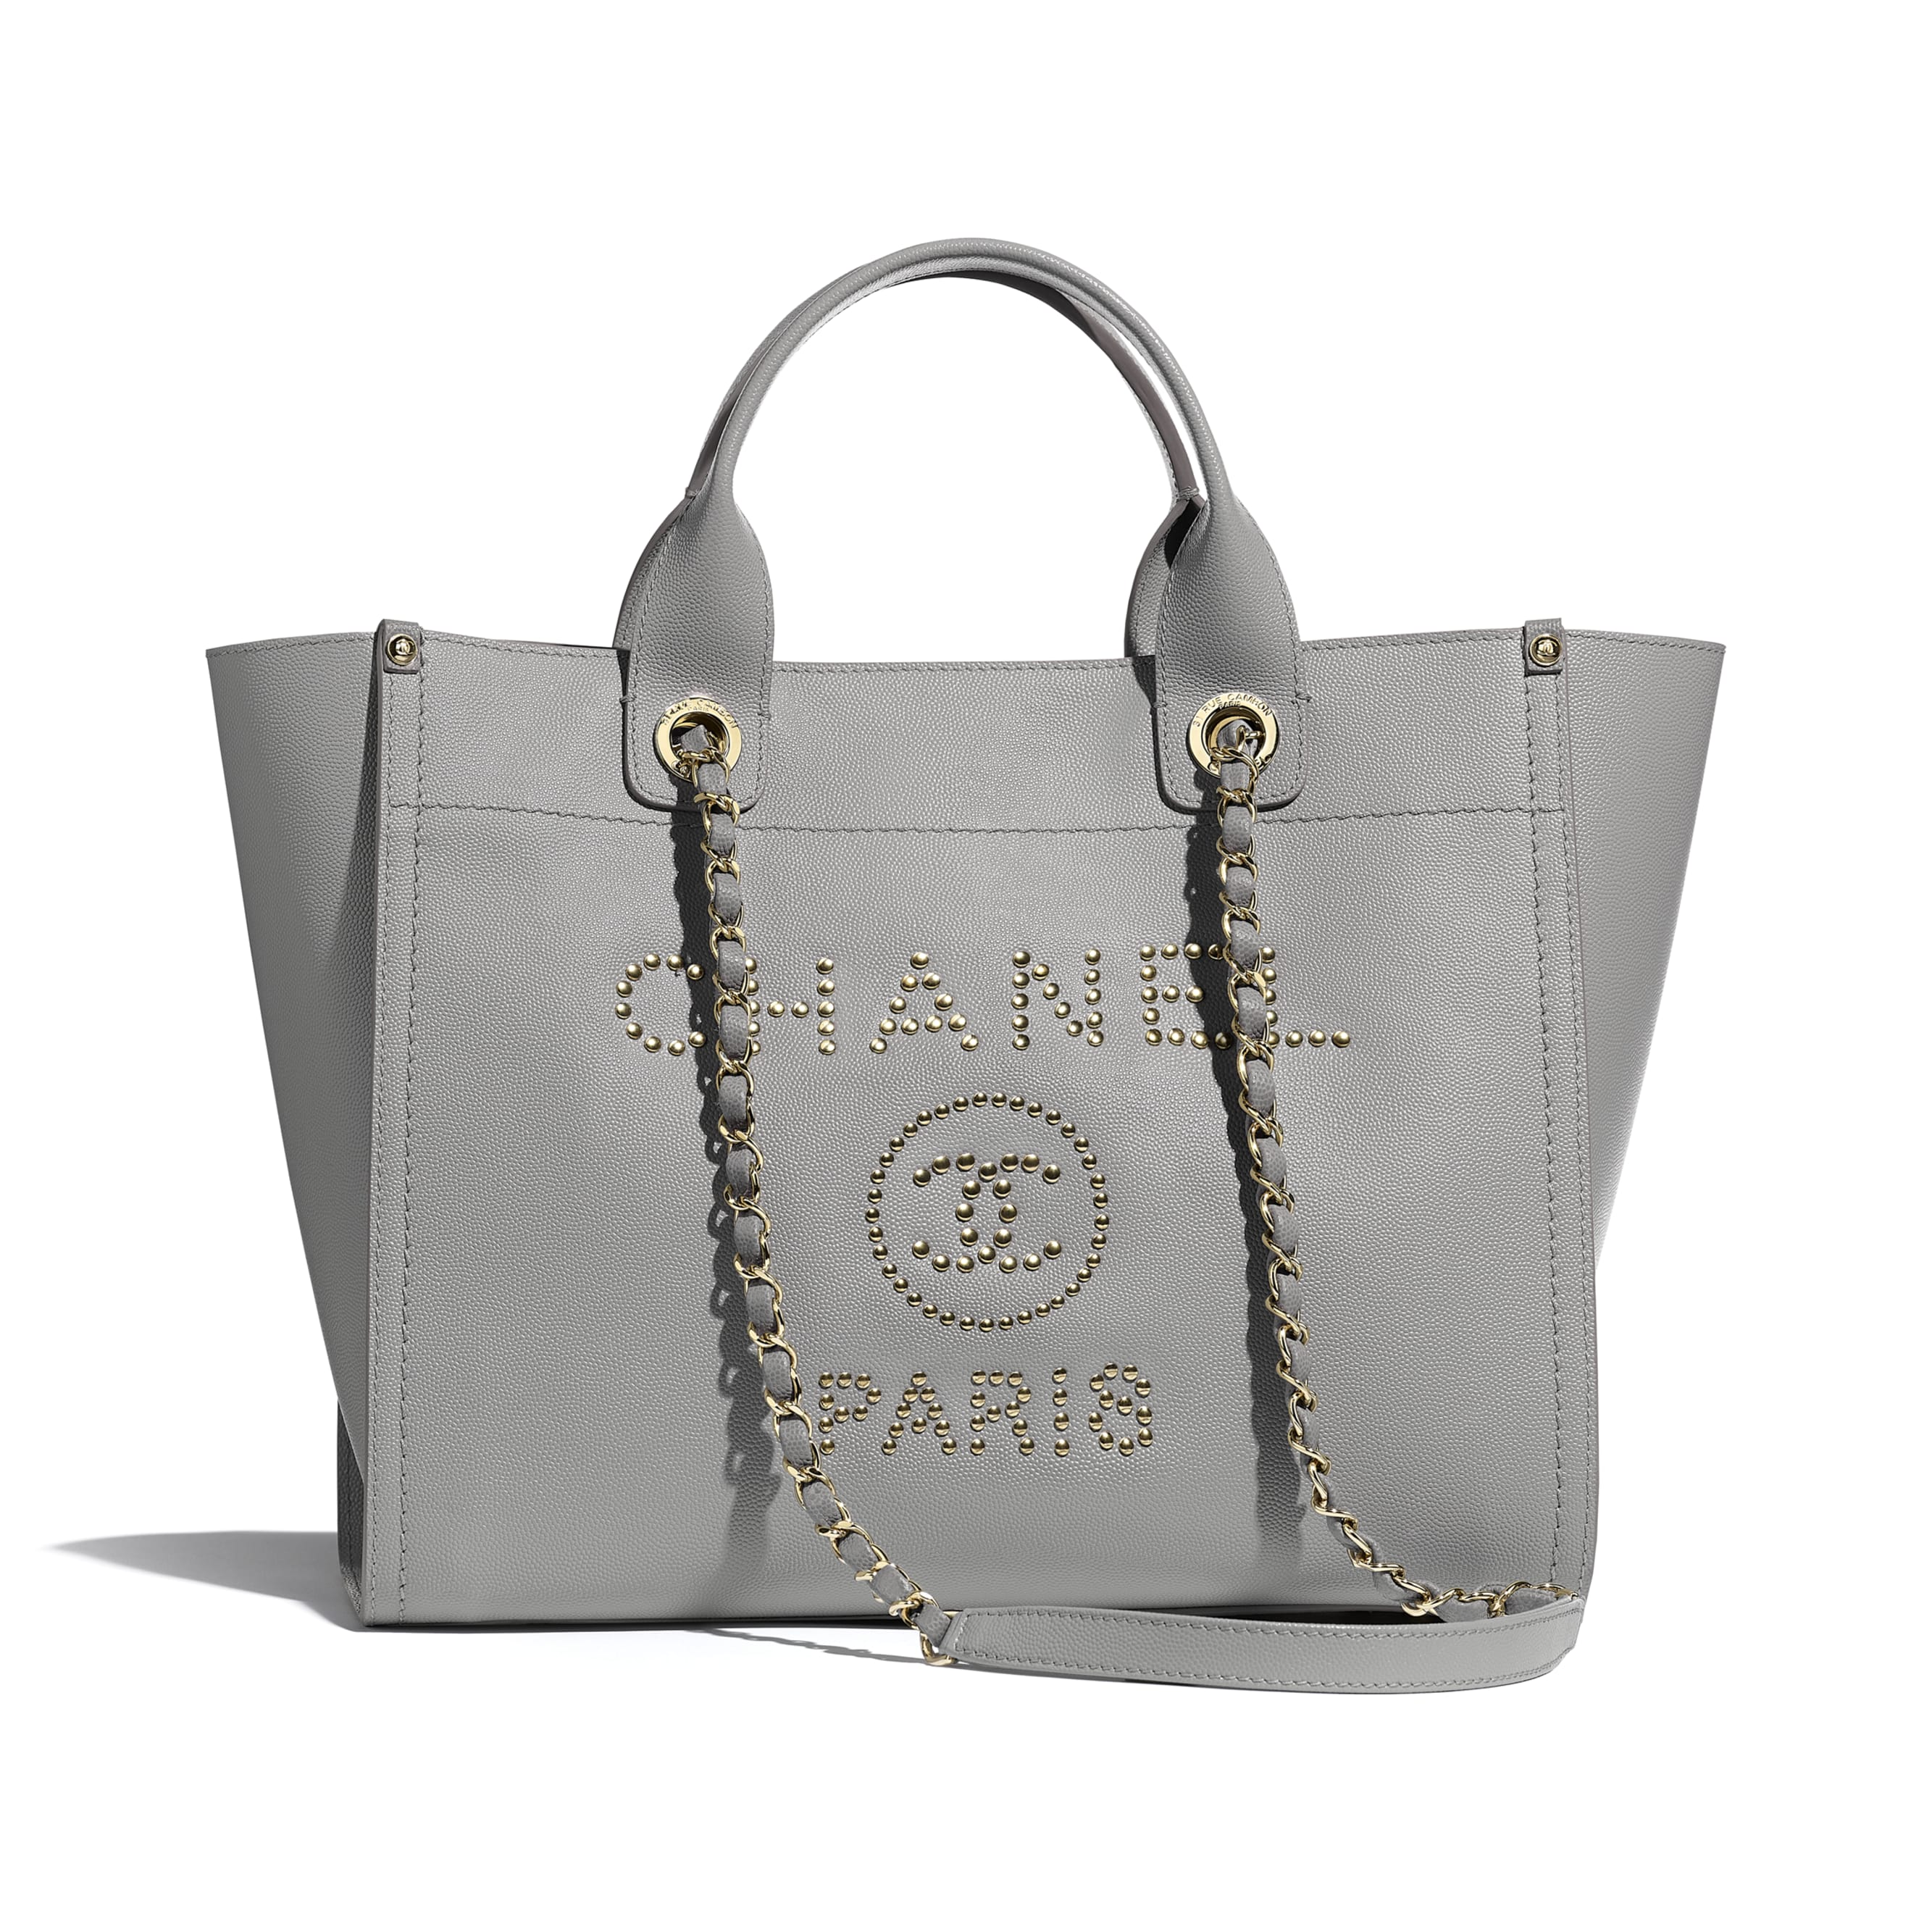 Shopping Bag - Grey - Grained Calfskin & Gold-Tone Metal - CHANEL - Default view - see standard sized version